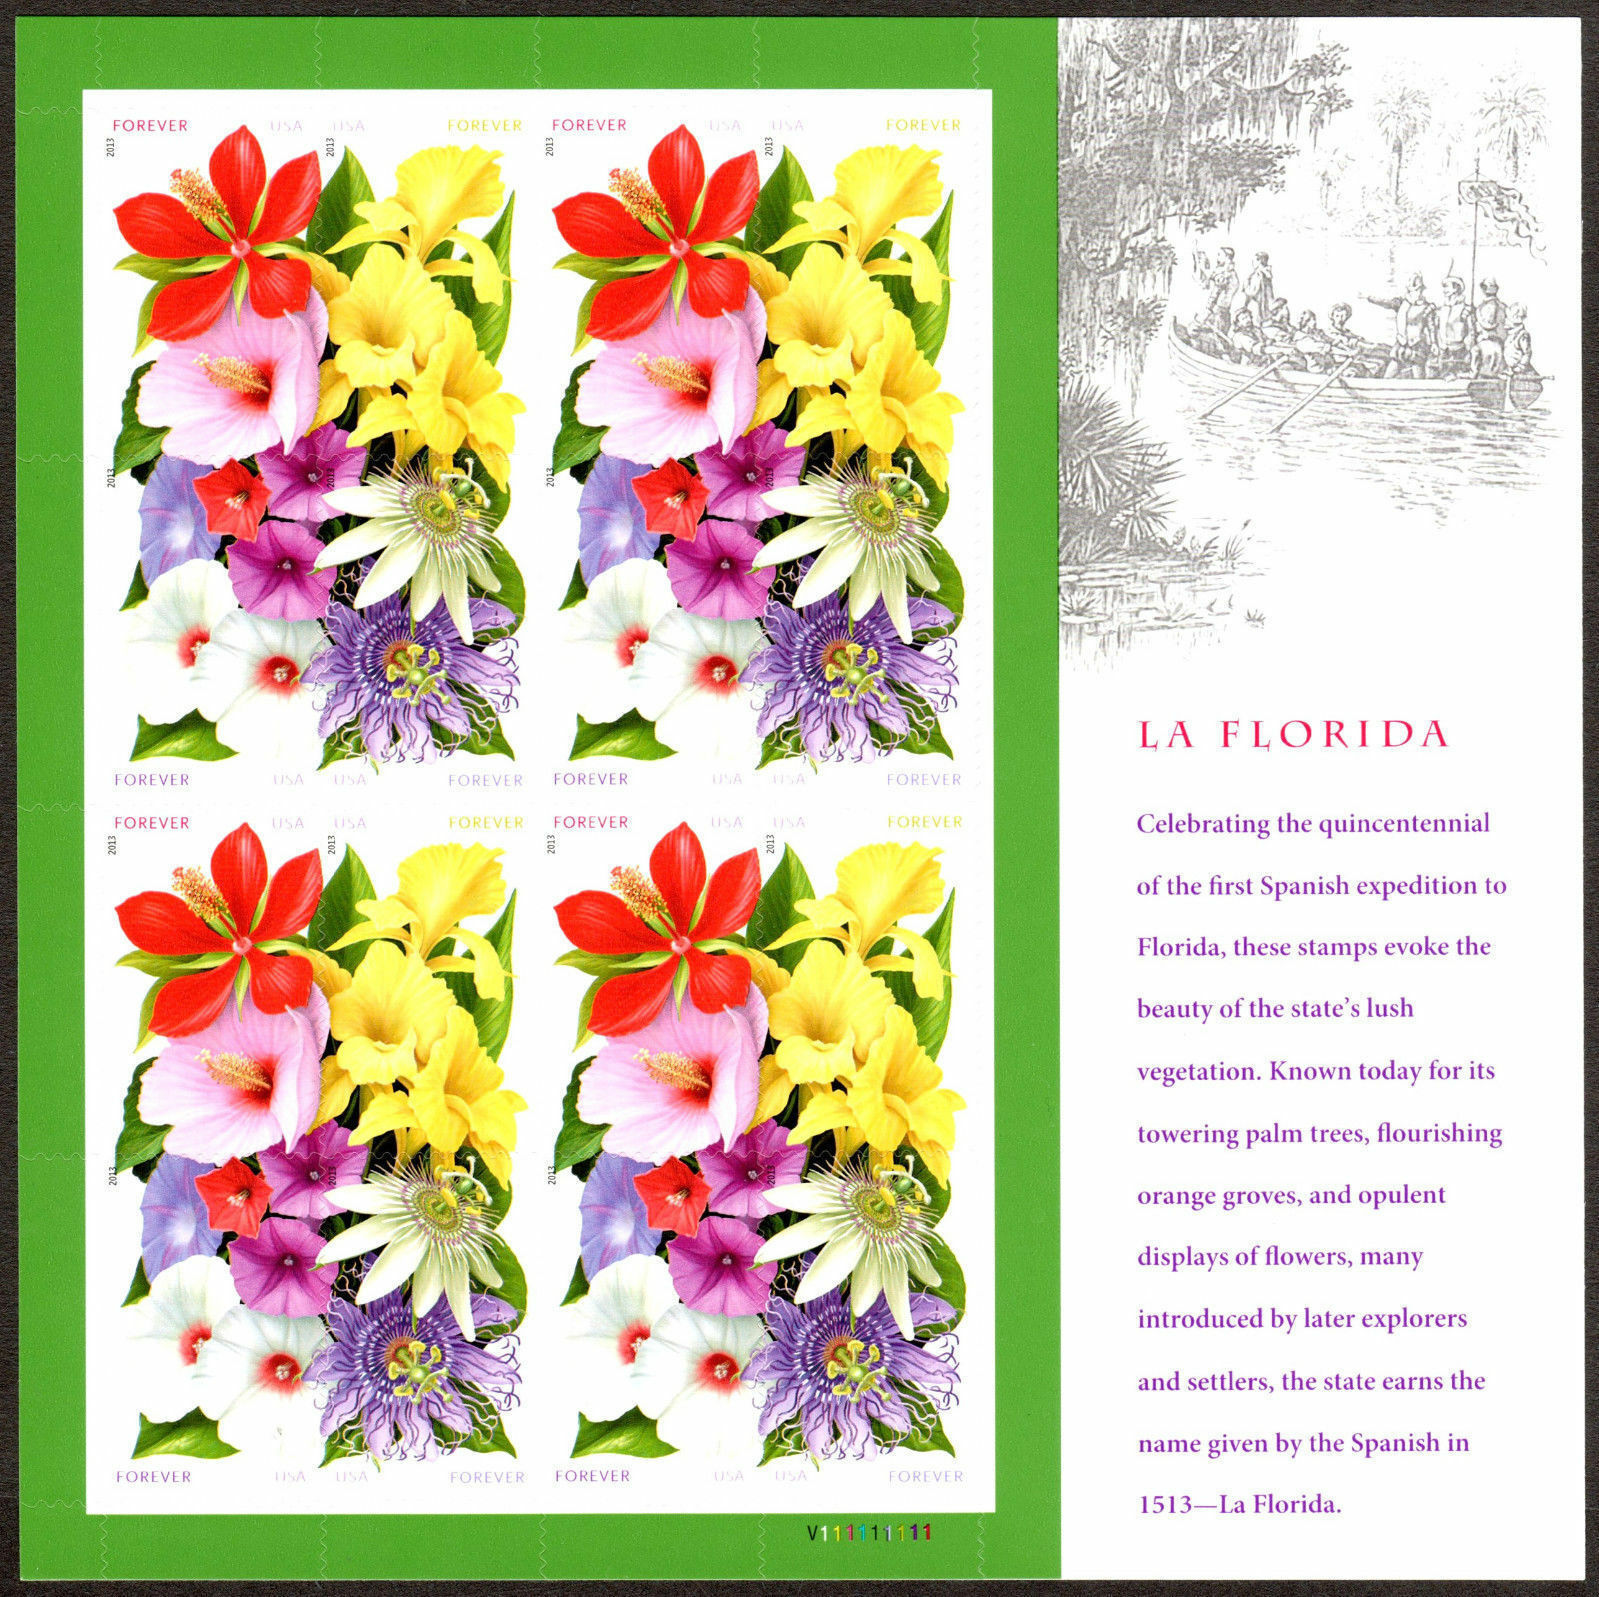 2013 46c La Florida, Flowers, Sheet of 16 Scott 4750-53